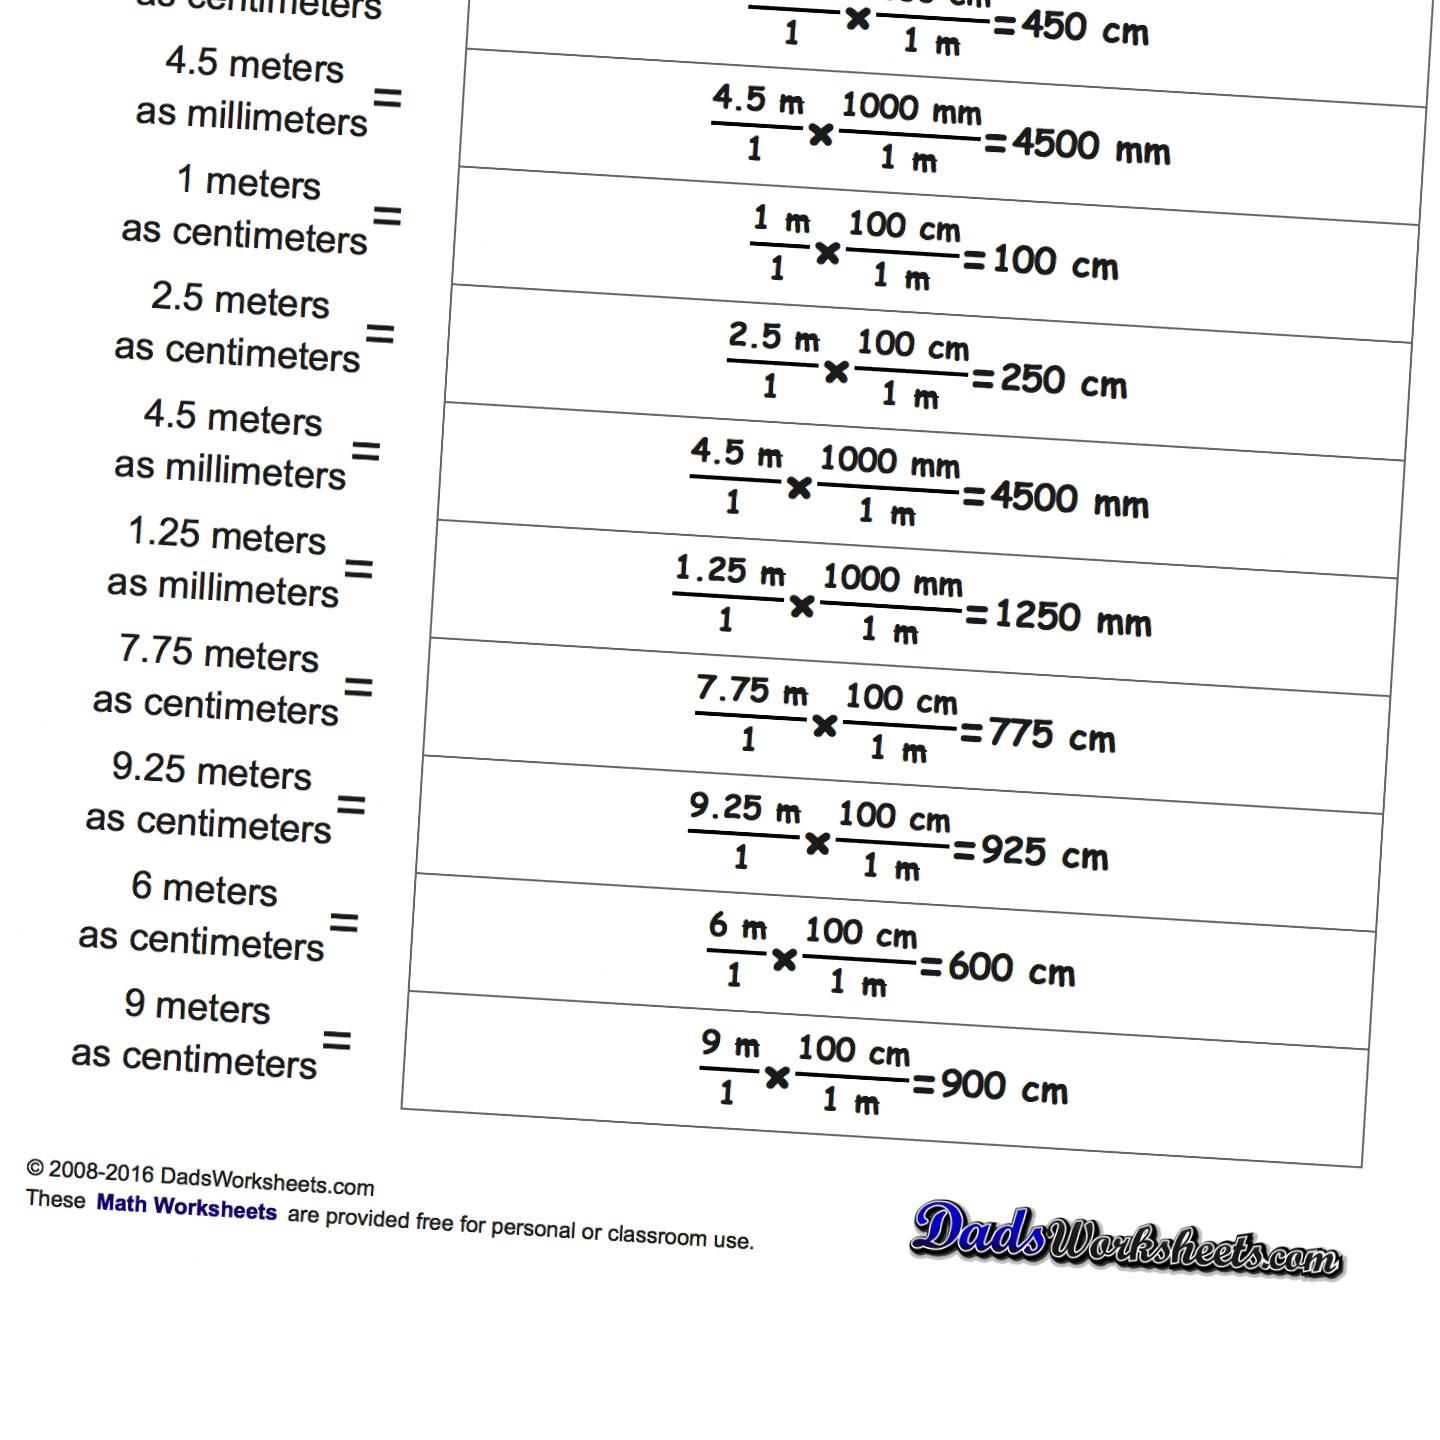 worksheet Conversion Practice Worksheet metric si unit conversions this page contains links to free math worksheets for si